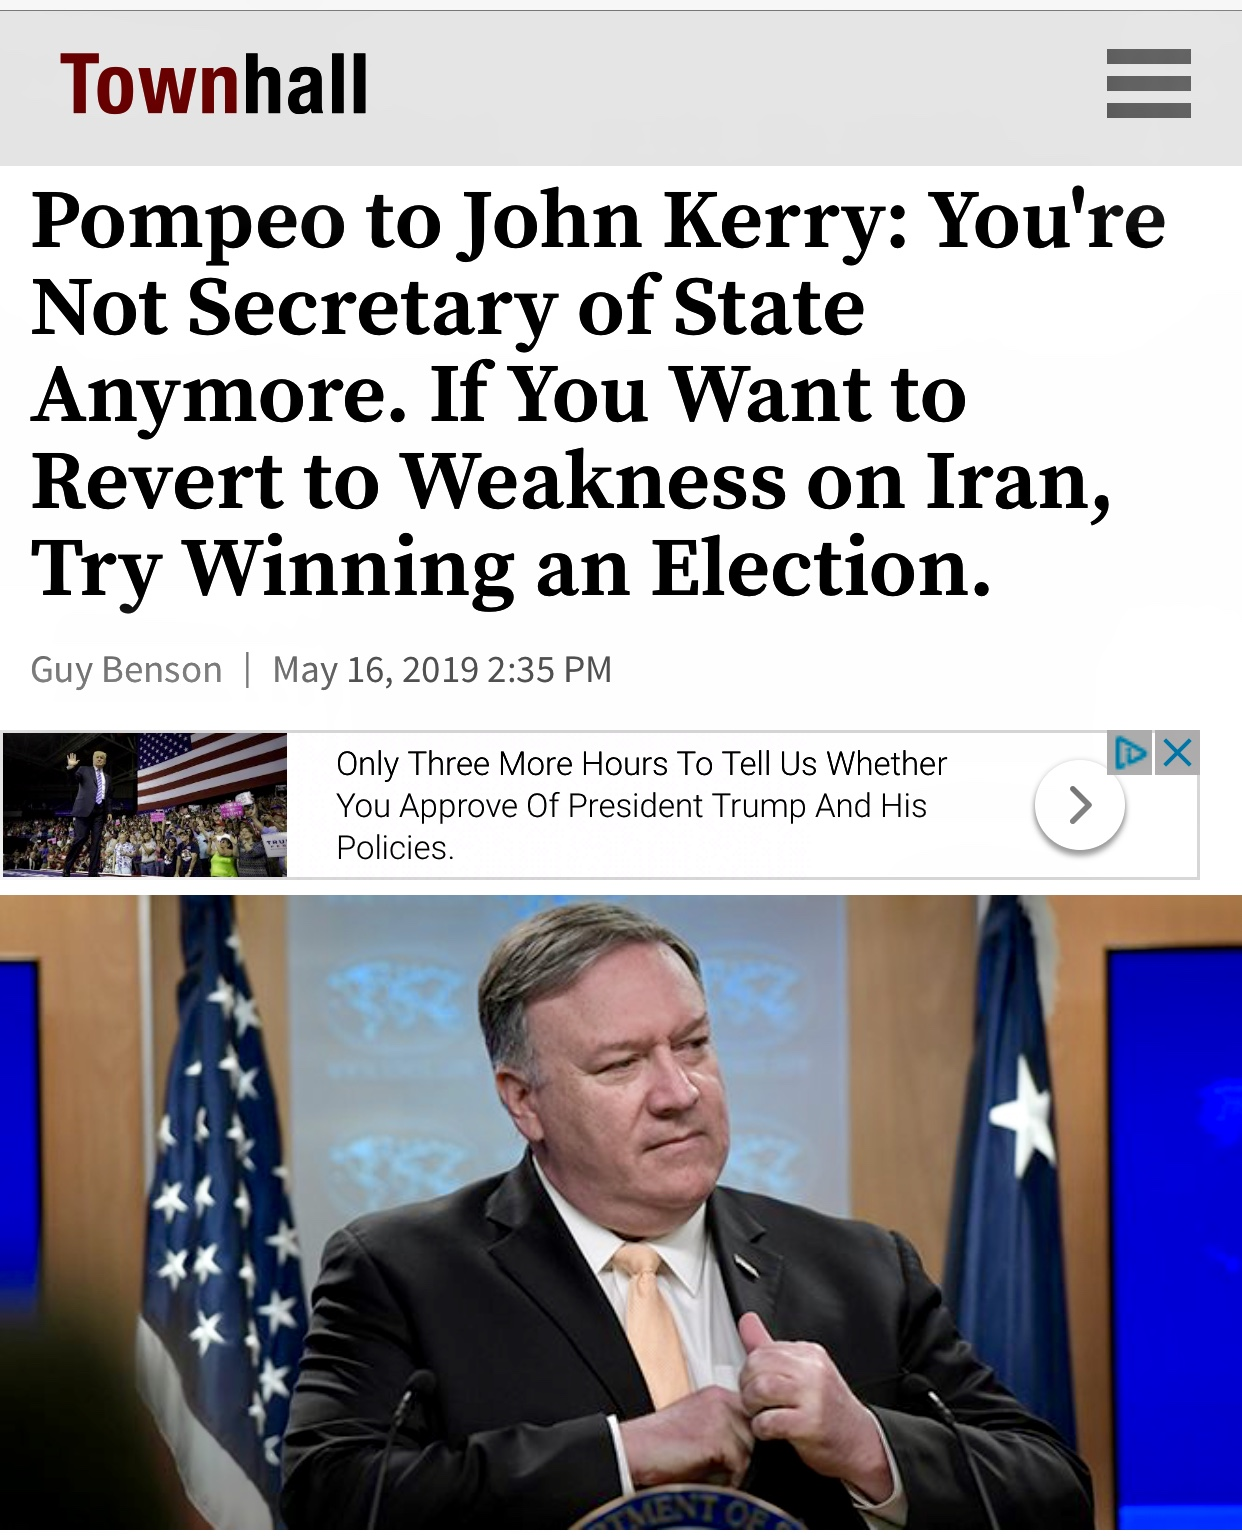 Pompeo to John Kerry: You're Not Secretary of State Anymore. If You Want to Revert to Weakness on Iran, Try Winning an Election.